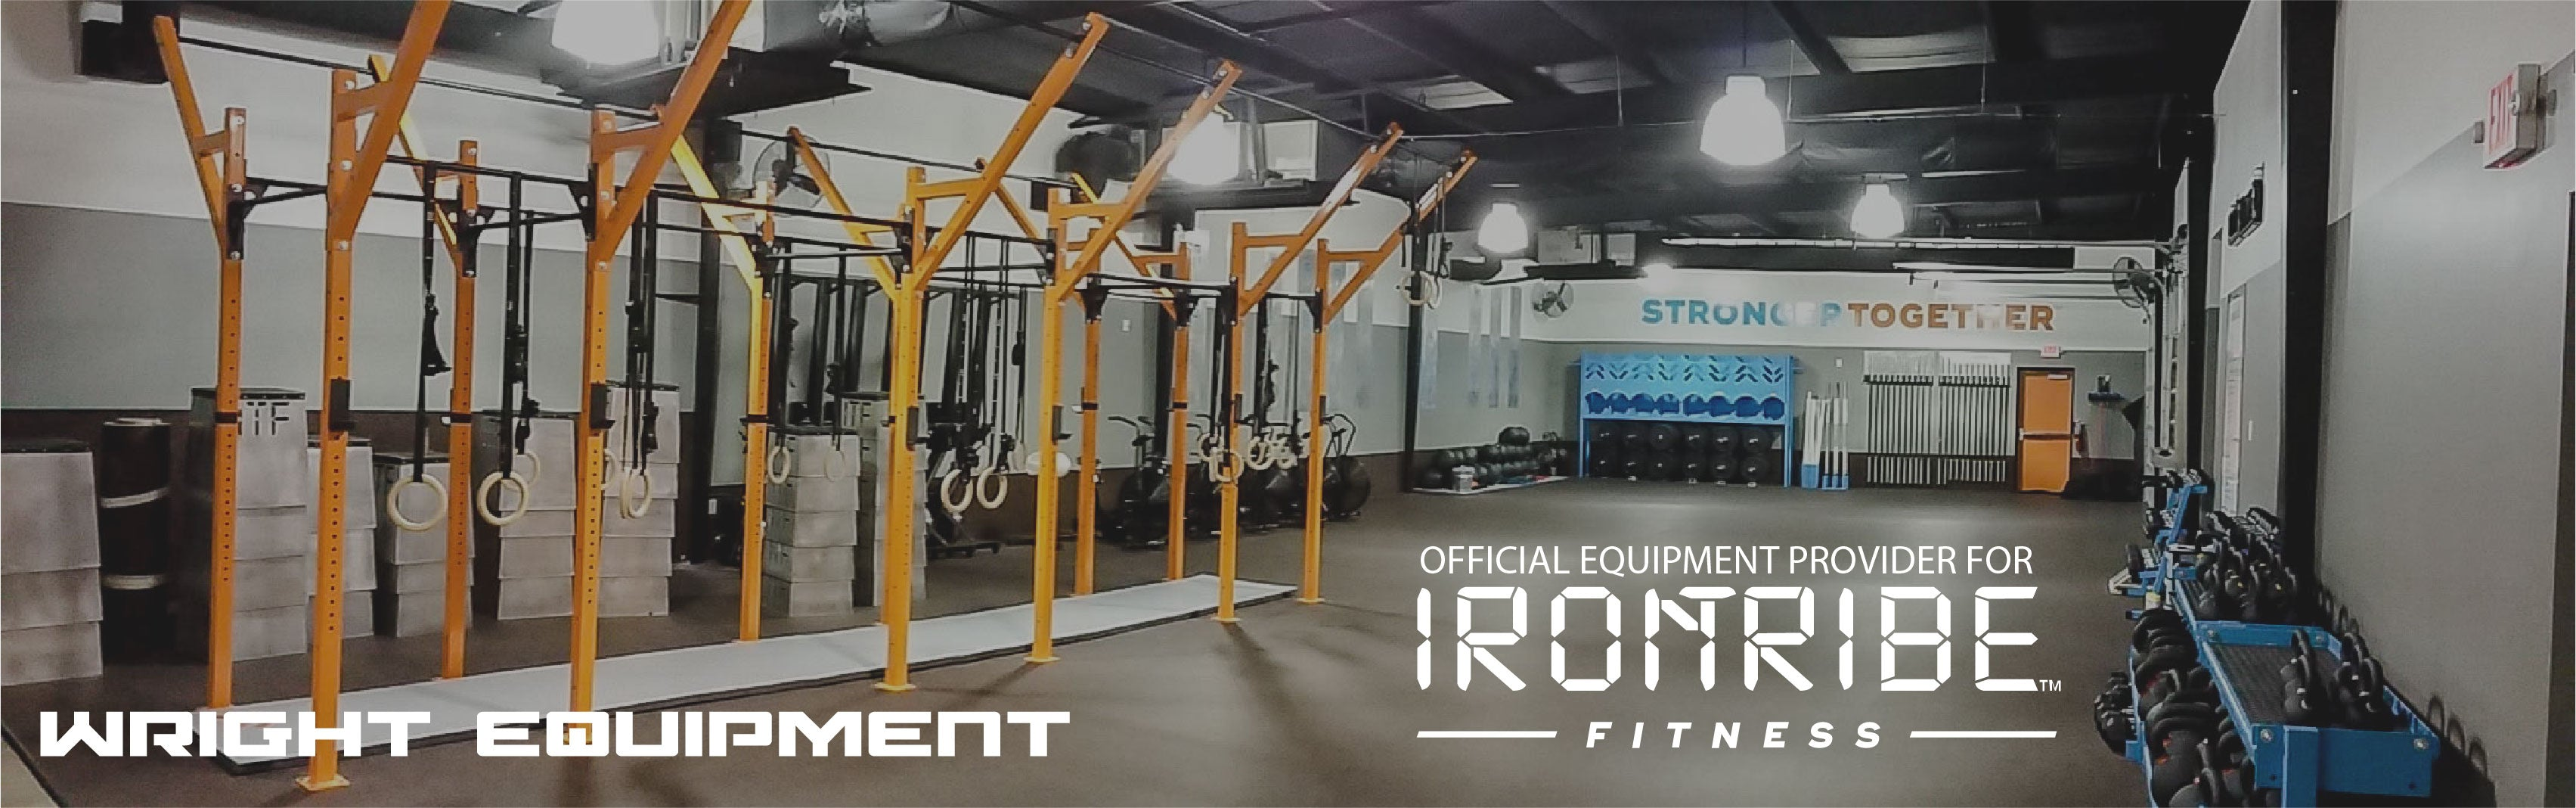 The Wright Partnership: Wright Equipment Inks Deal With Iron Tribe Fitness